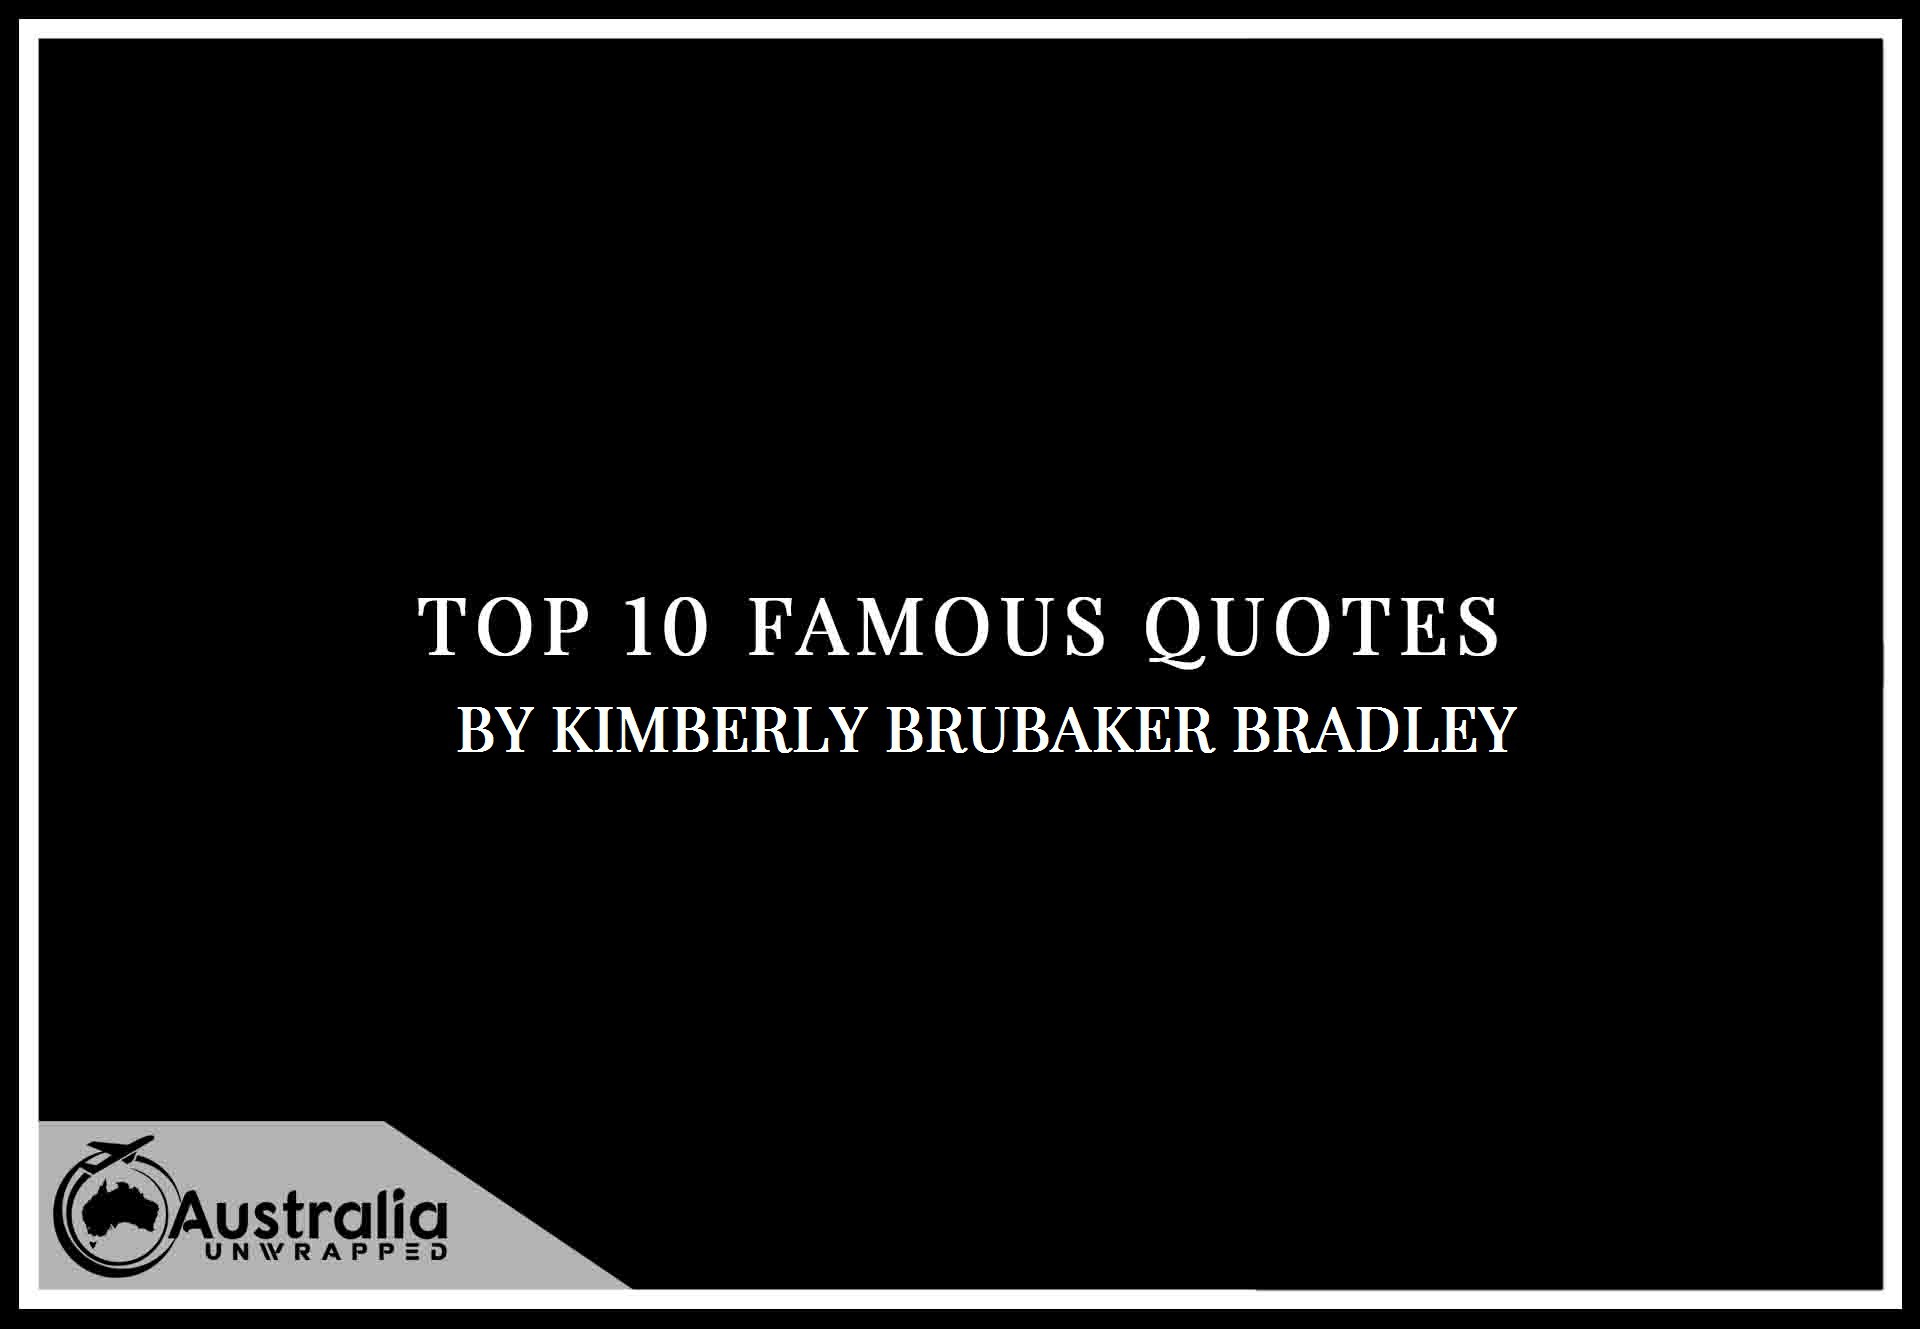 Kimberly Brubaker Bradley's Top 10 Popular and Famous Quotes